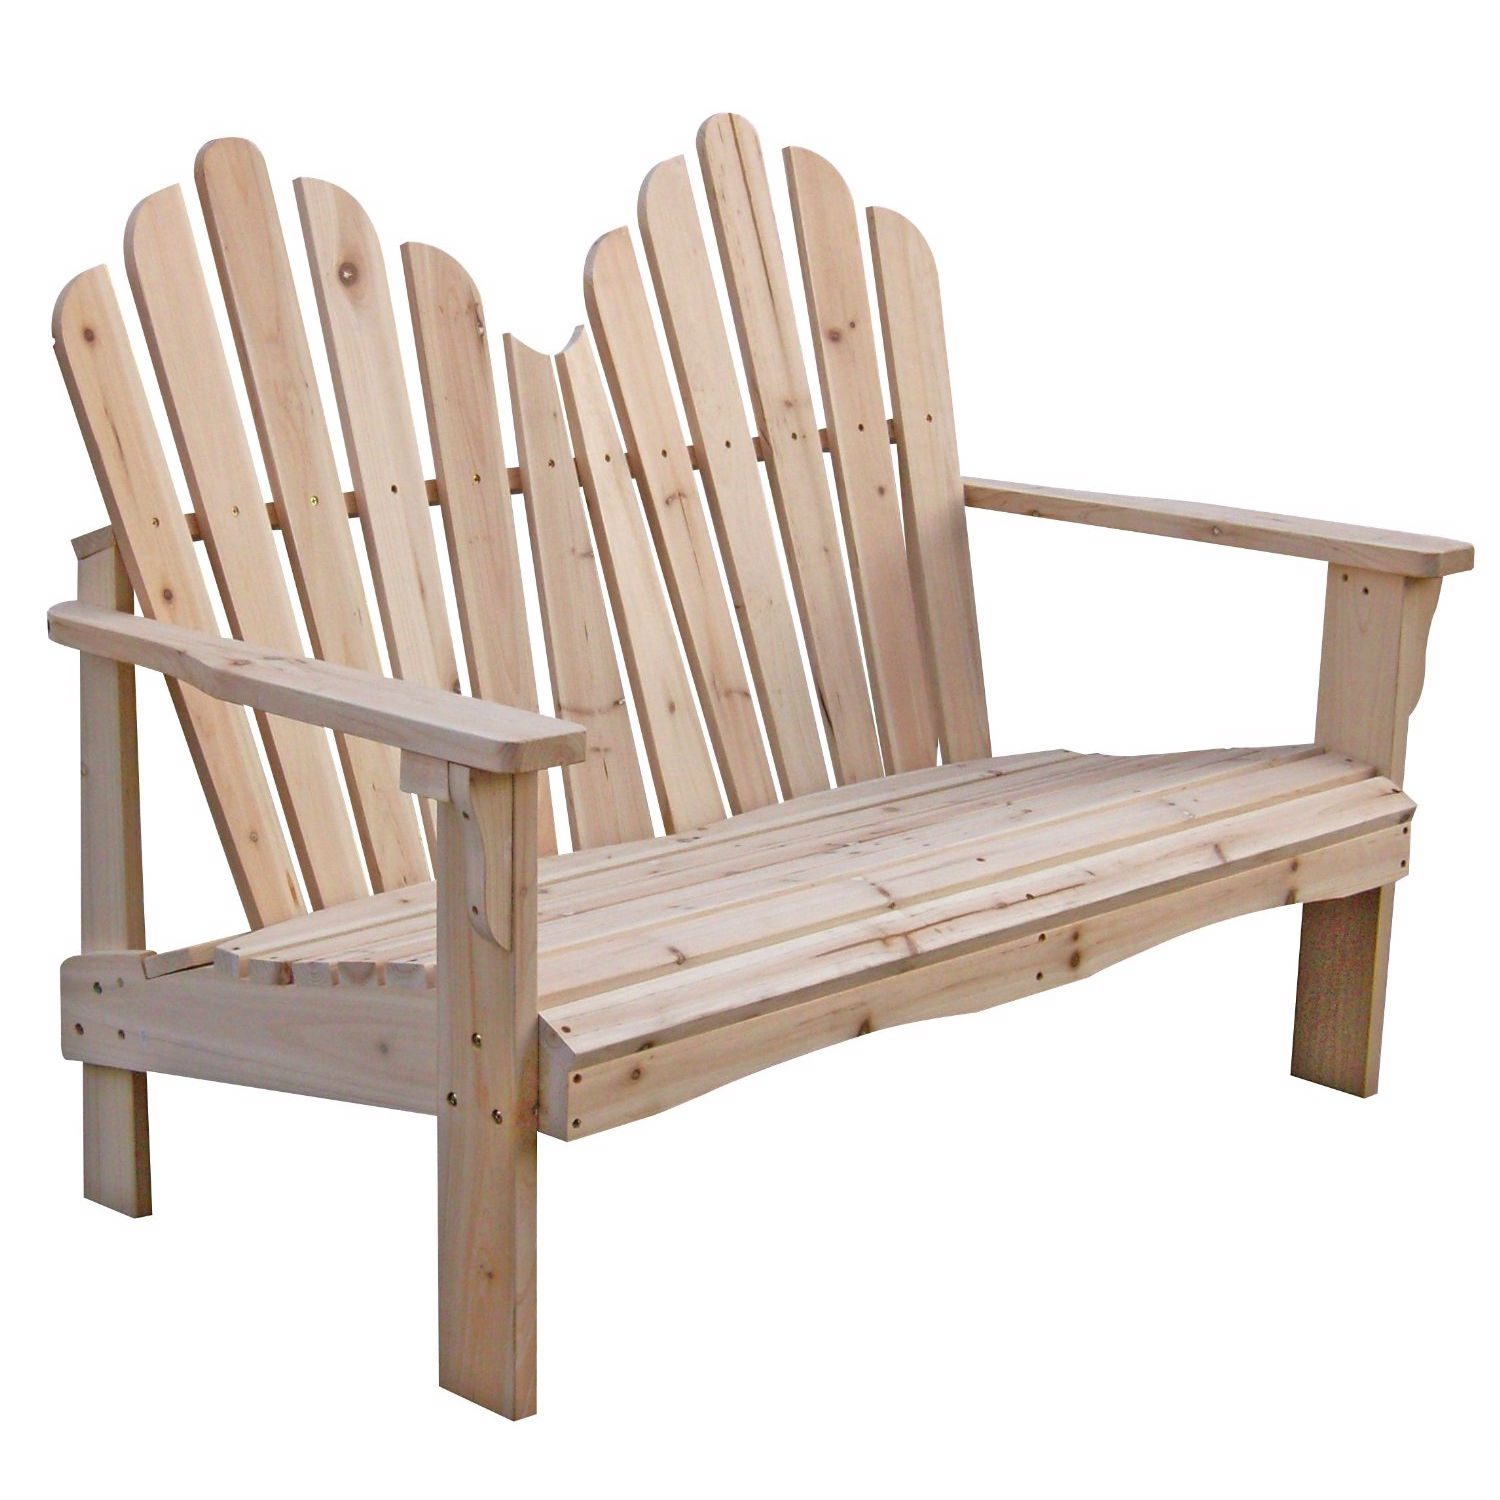 Cedar Wood Outdoor Patio 2-Seat Adirondack Chair Style Loveseat, SWL15970 :  What's best than sharing this Cedar Wood Outdoor Patio 2-Seat Adirondack Chair Style Loveseat with your partner to enjoy the outside scenery. Assembles in approximately 20 minutes. Functional and practical to use indoors or outdoors. Cedar wood also have a beautiful grain and a knotty grade that add warmth and charm to it; The natural unfinished feature allows you to be creative and you can paint or stain it to your style; Rust resistant hardware.